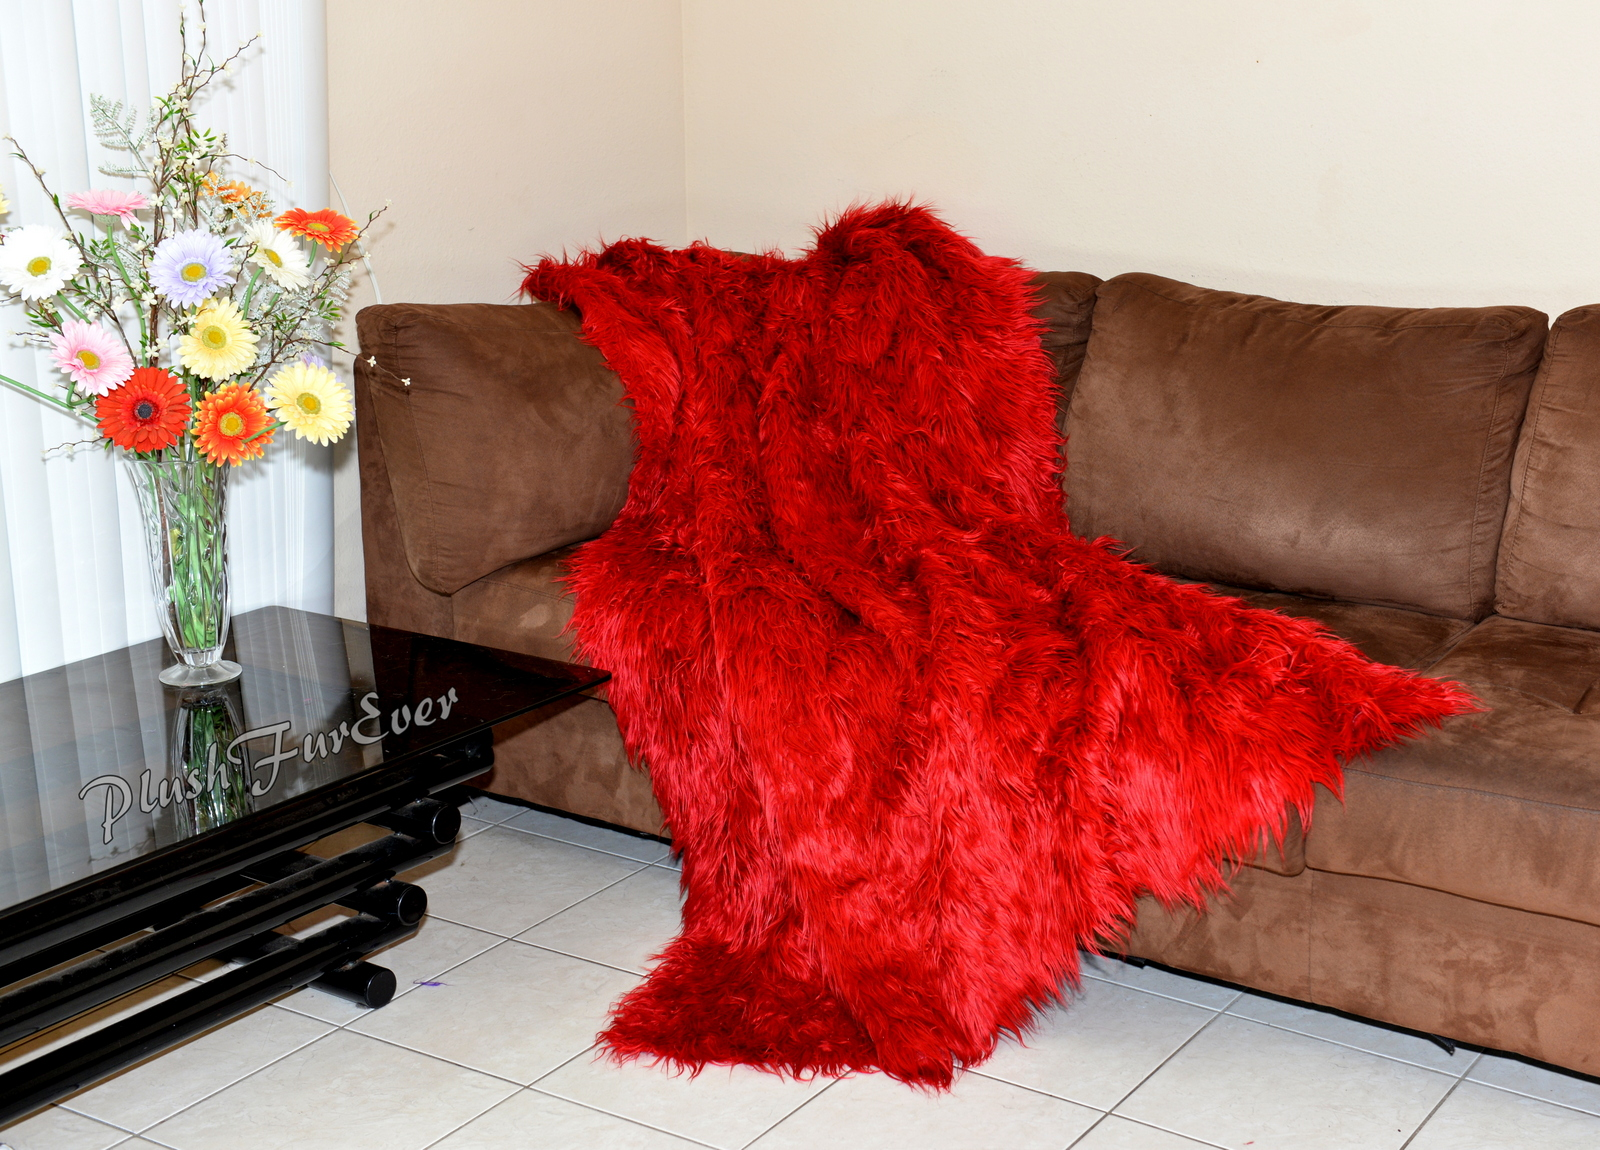 Red Mongolian Faux Fur Throws Comforters Blankets Couch Sofa Bedroom  Nursery Accent Luxurious Decor Mink Back Fake Acrylics Furs